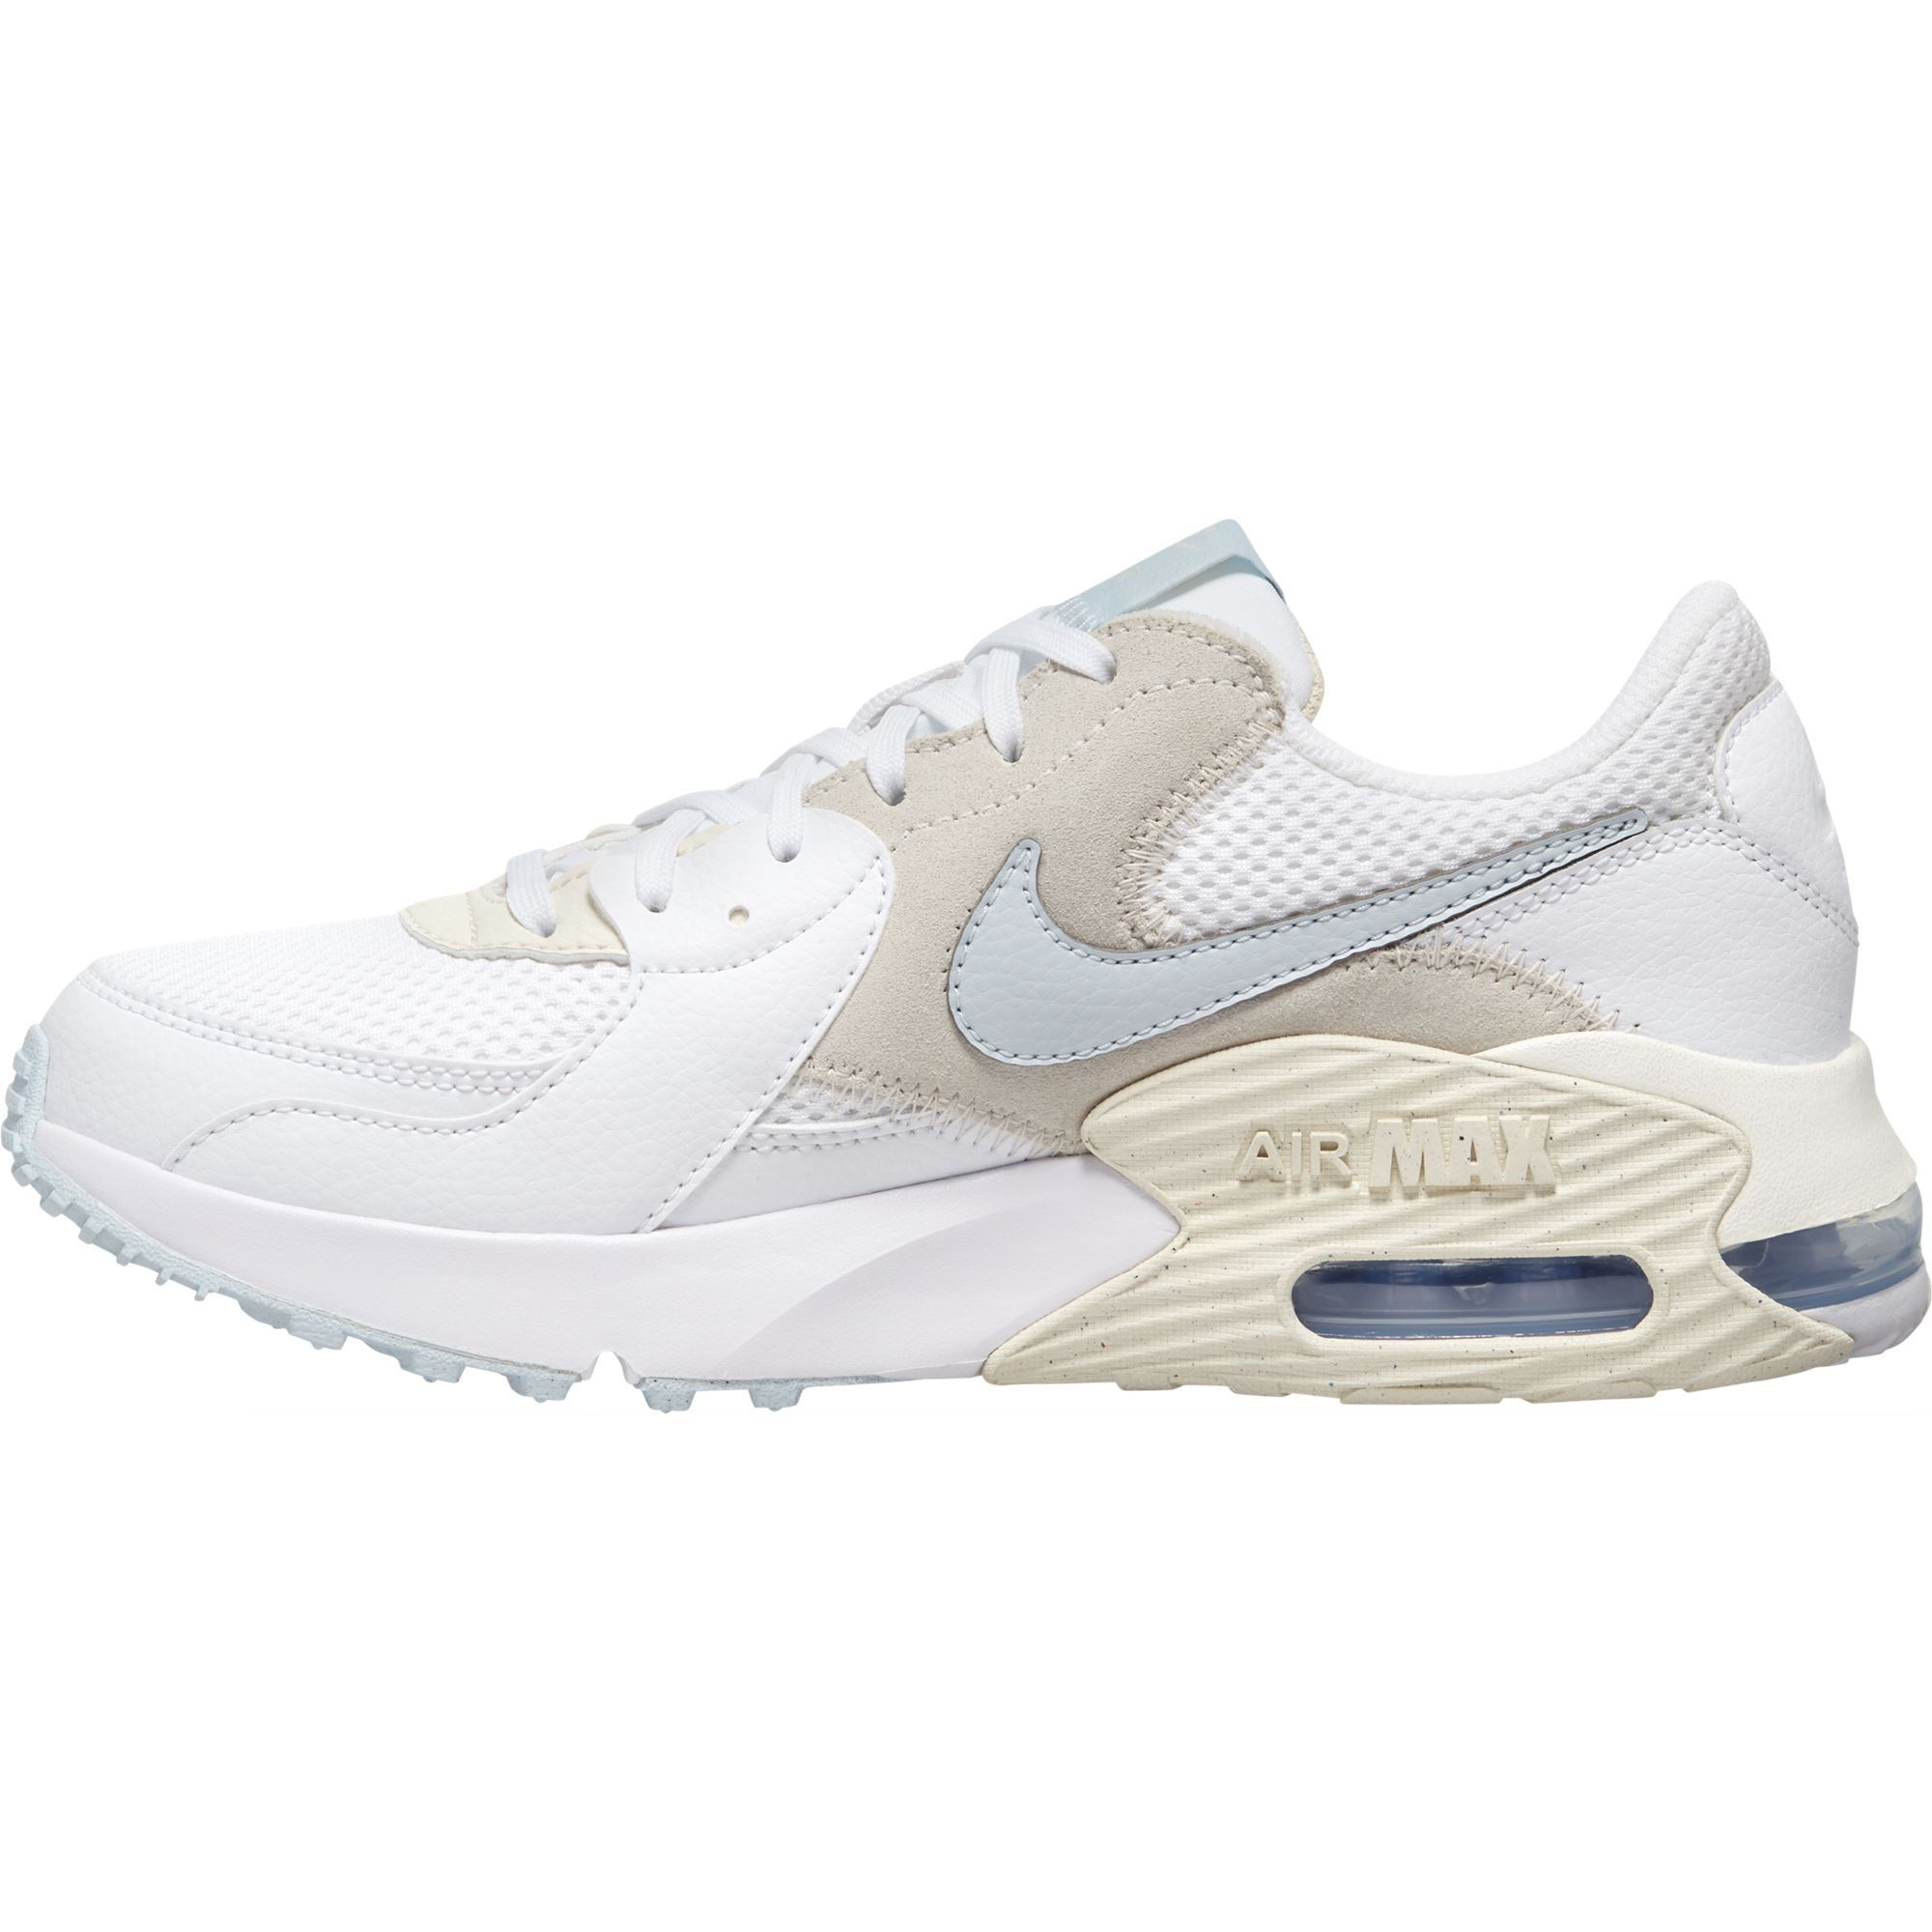 Nike Womens Air Max Excee - White/Aura-Pale Ivory-Light Cream SP-Footwear-Womens Nike